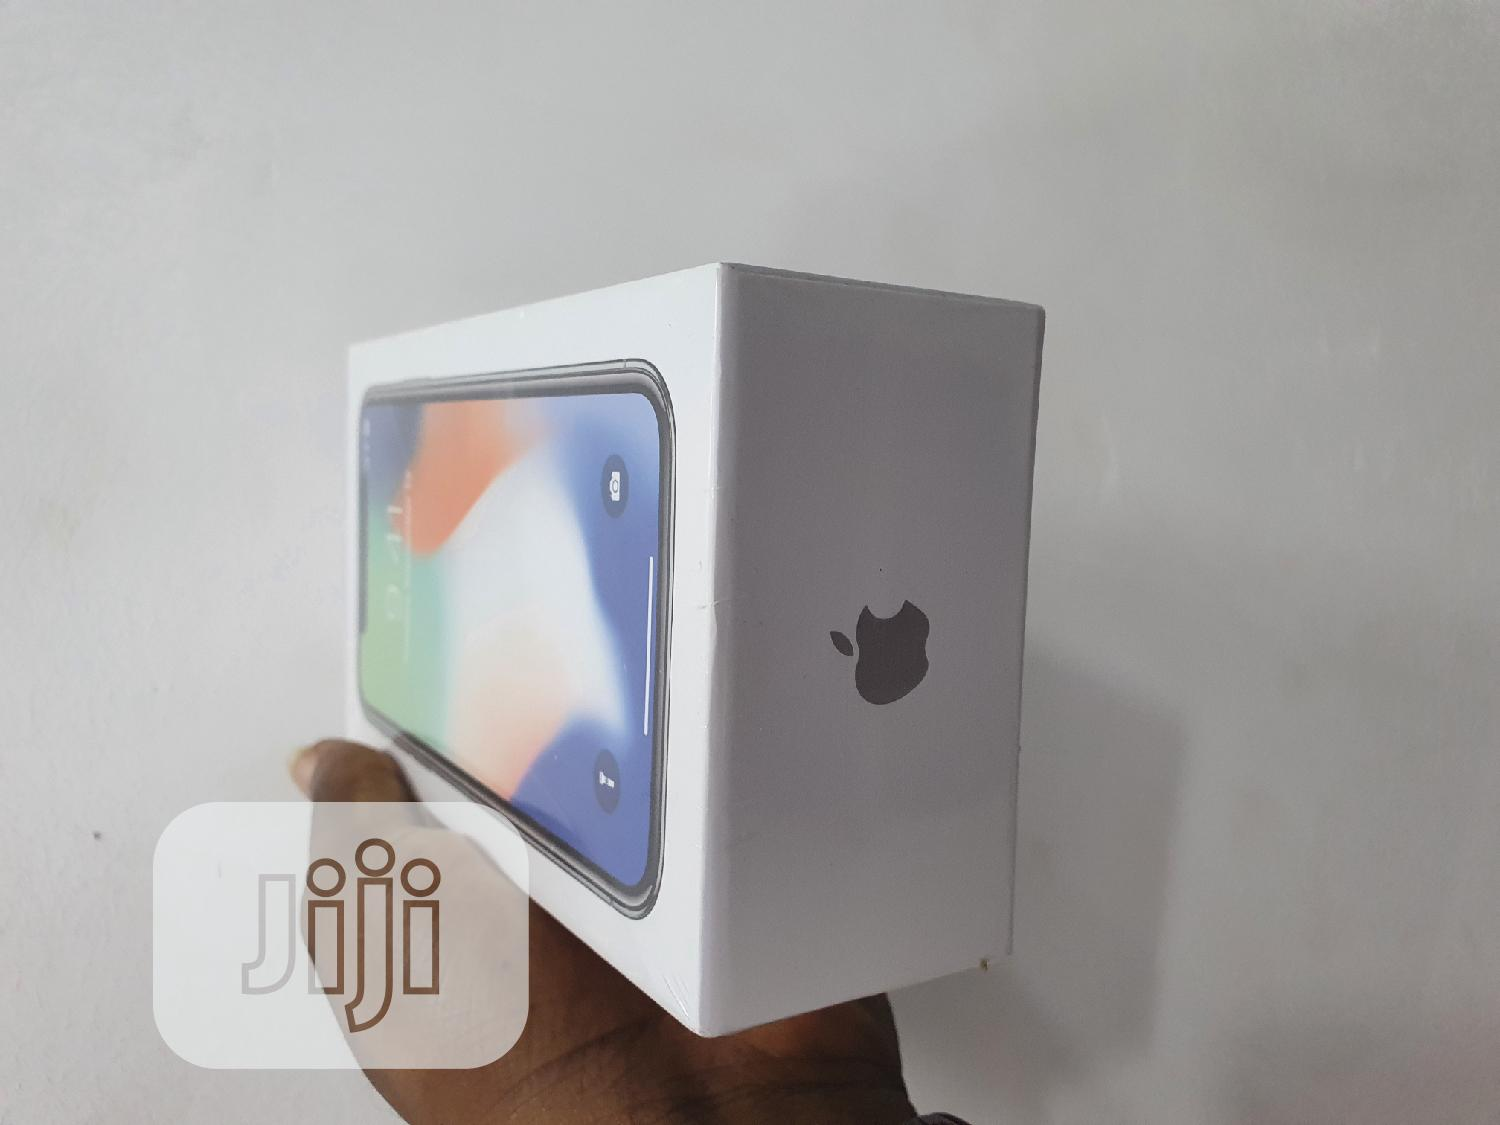 New Apple iPhone X 256 GB Silver | Mobile Phones for sale in Ikeja, Lagos State, Nigeria